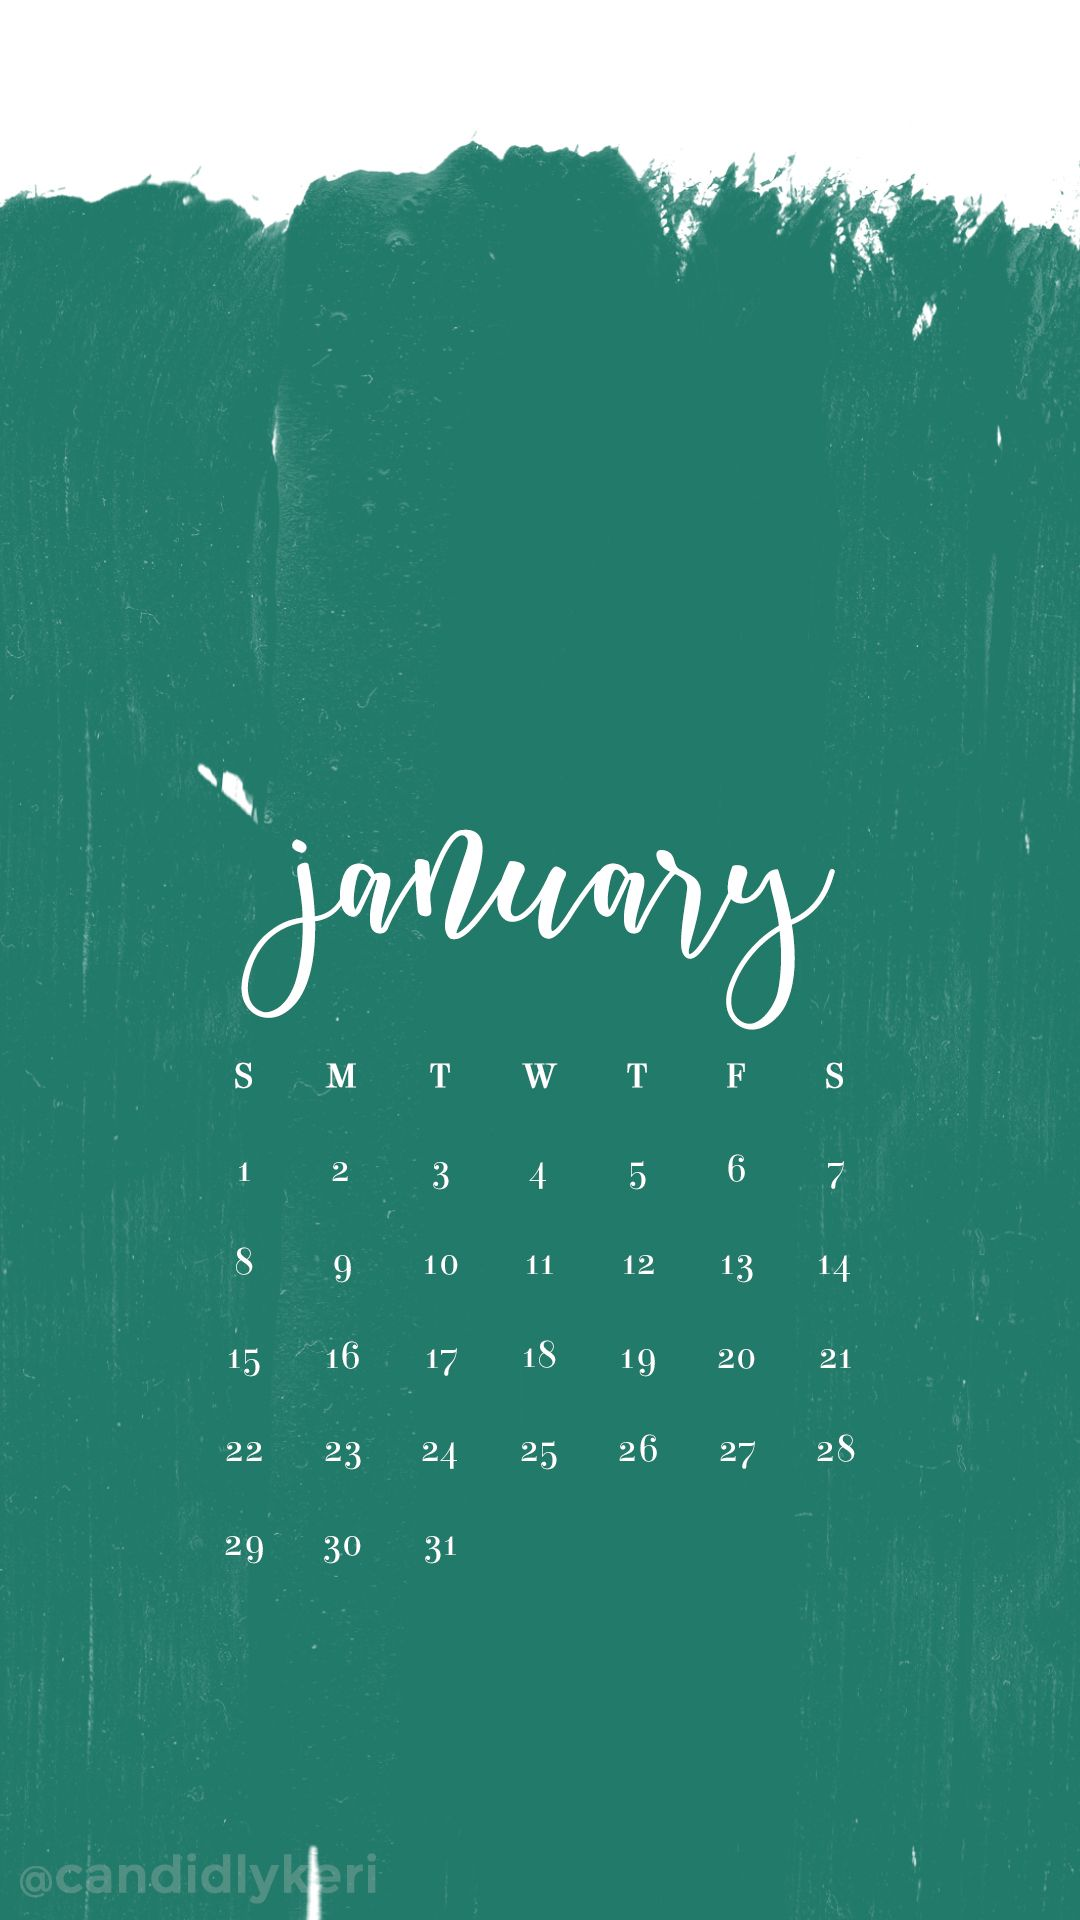 Teal turquoise paint strokes January calendar 2017 wallpaper you can